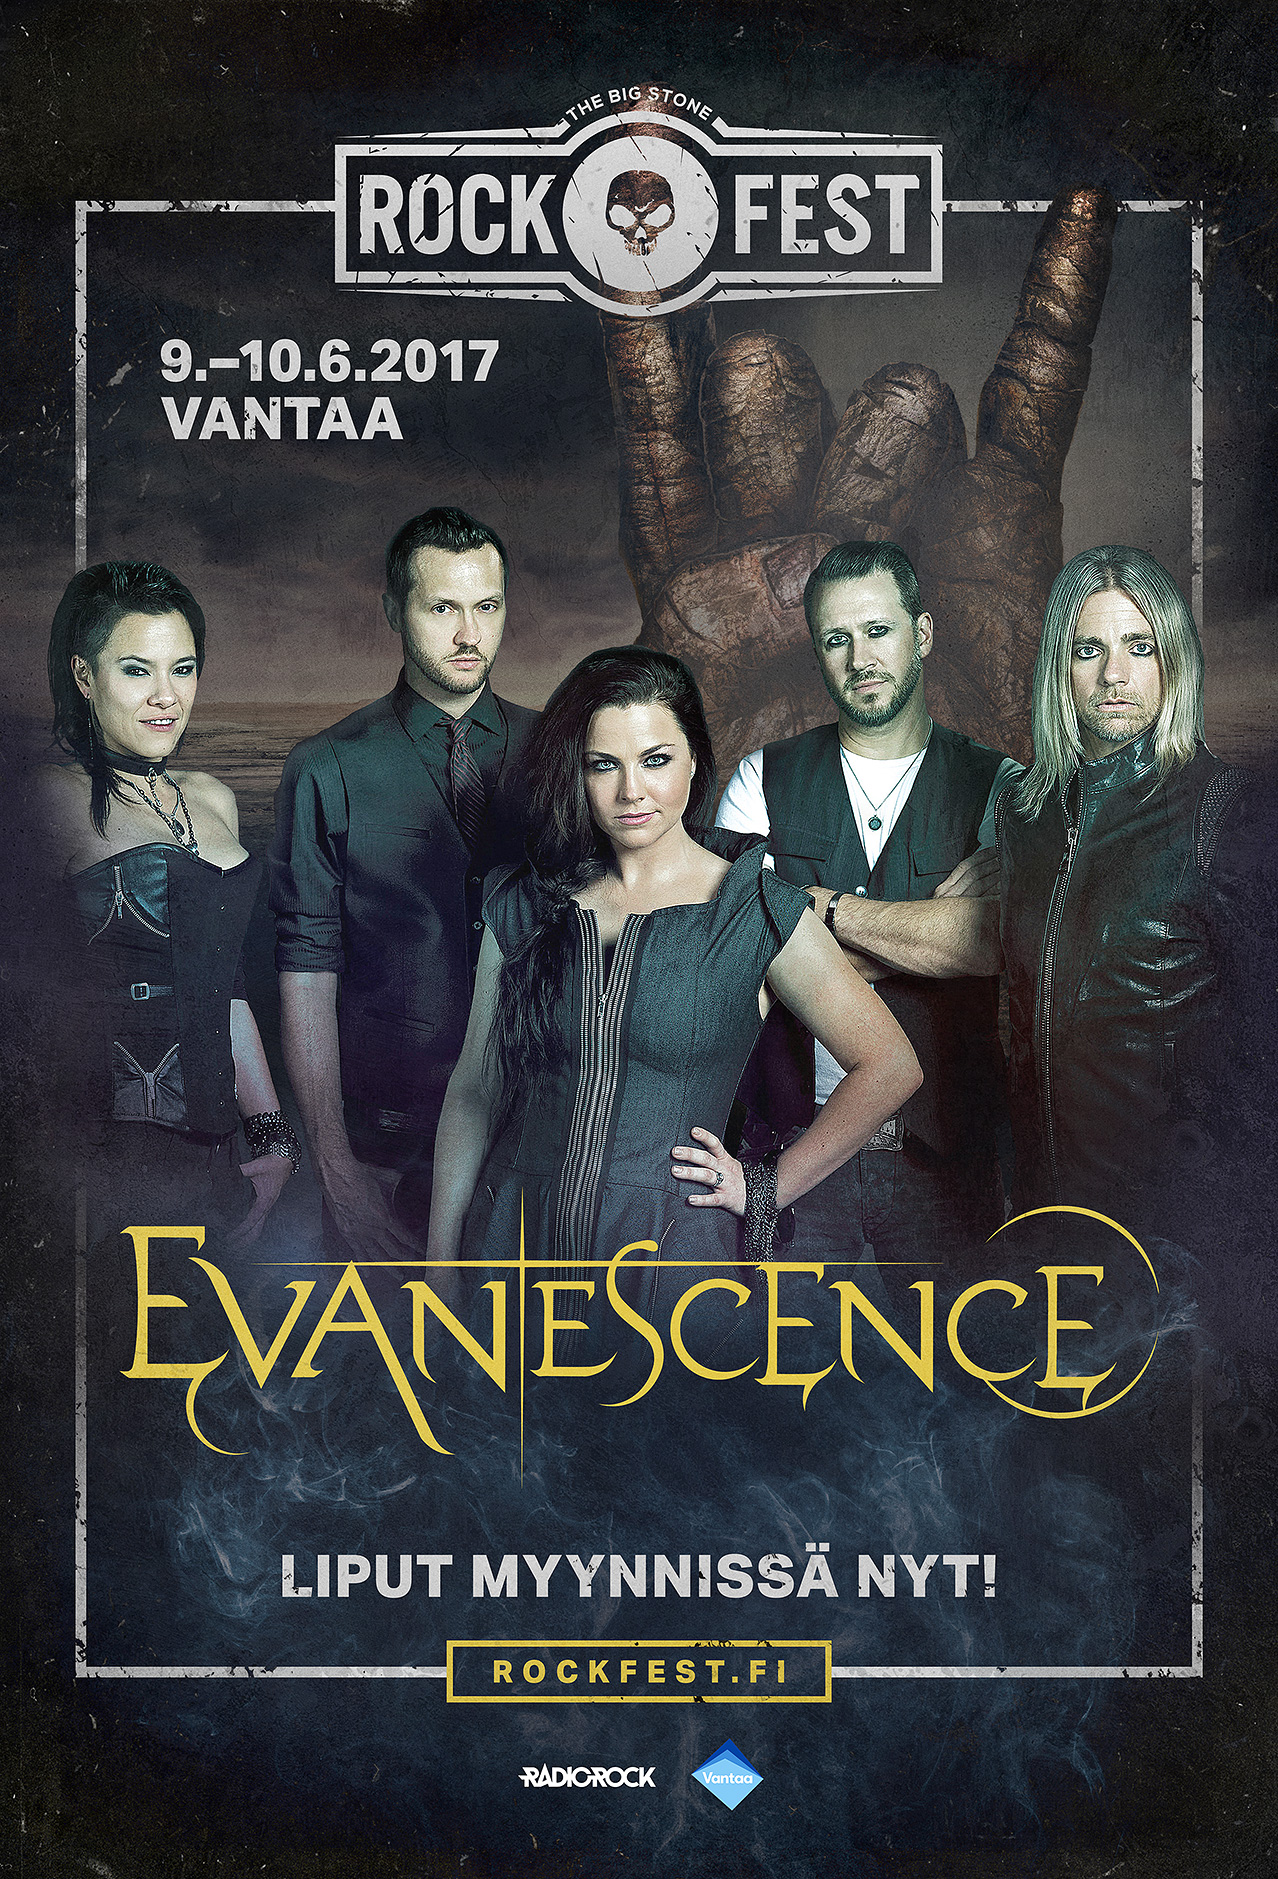 Outdoor campaign, artist poster featuring Evanescence